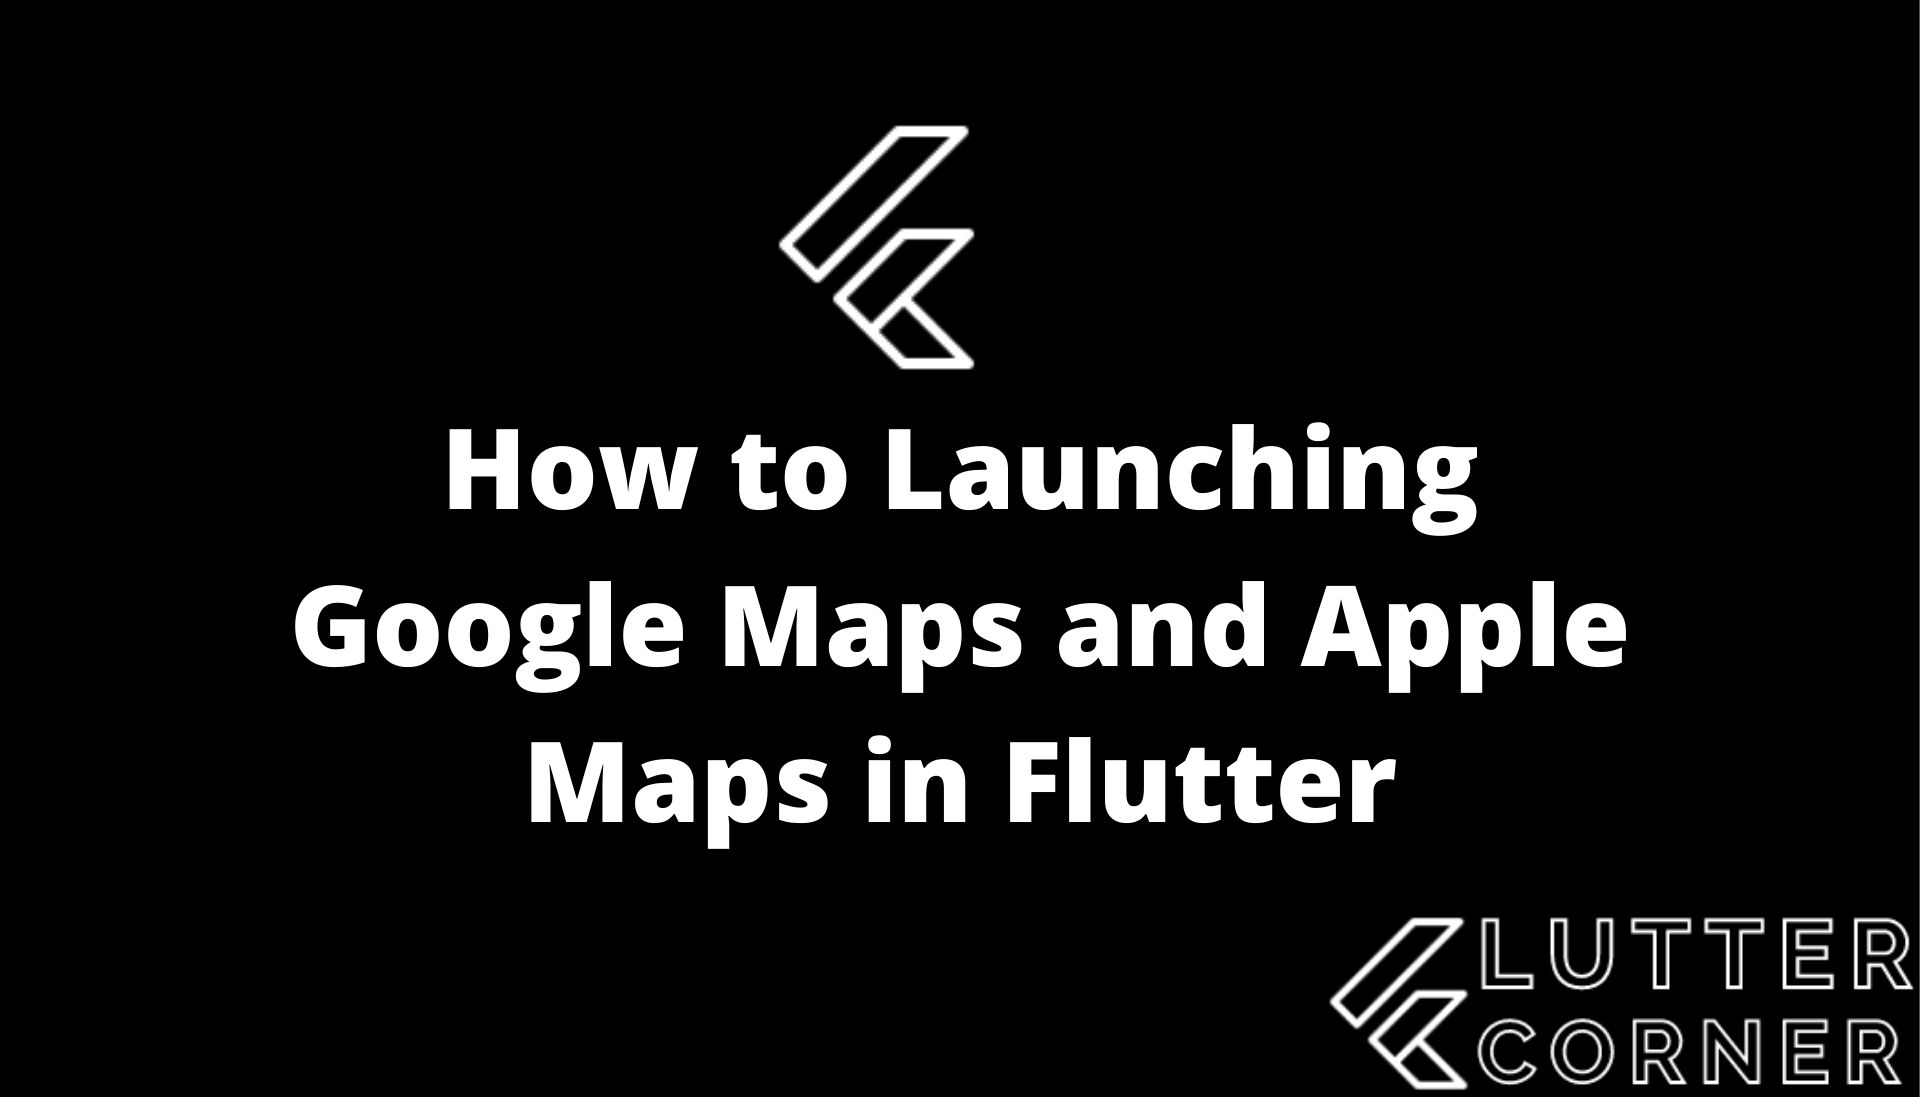 launching google maps and apple, Launching Google Maps and Apple Maps in Flutter, How to Launching Google Maps and Apple Maps in Flutter, apple maps in flutter